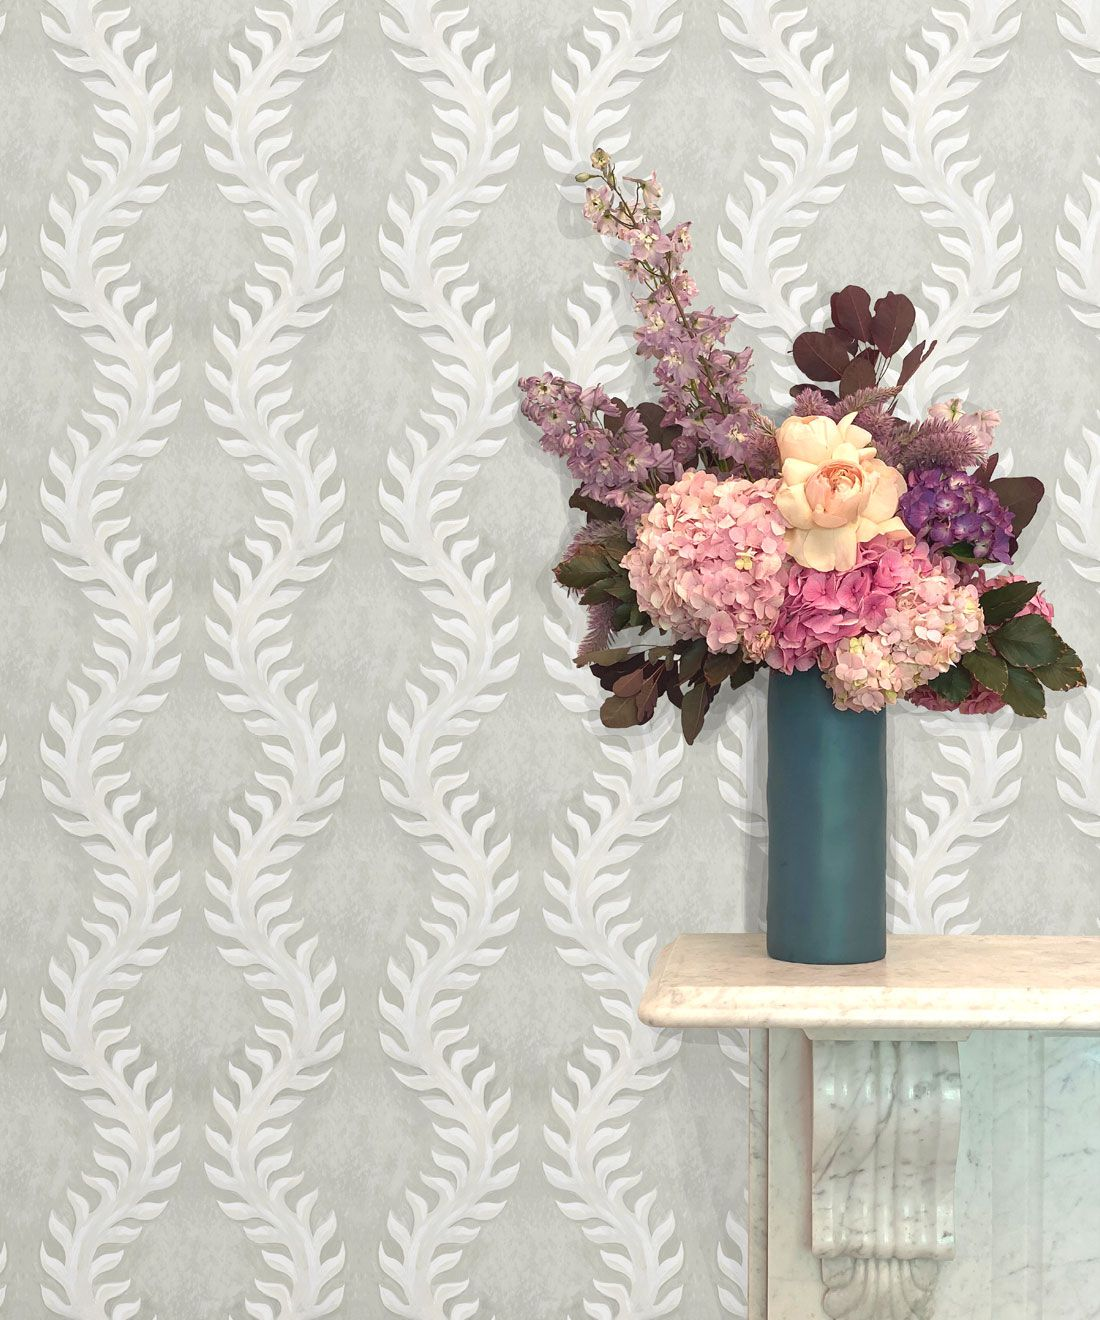 Fern Wallpaper • Beige •Insitu with Pink and purple flowers